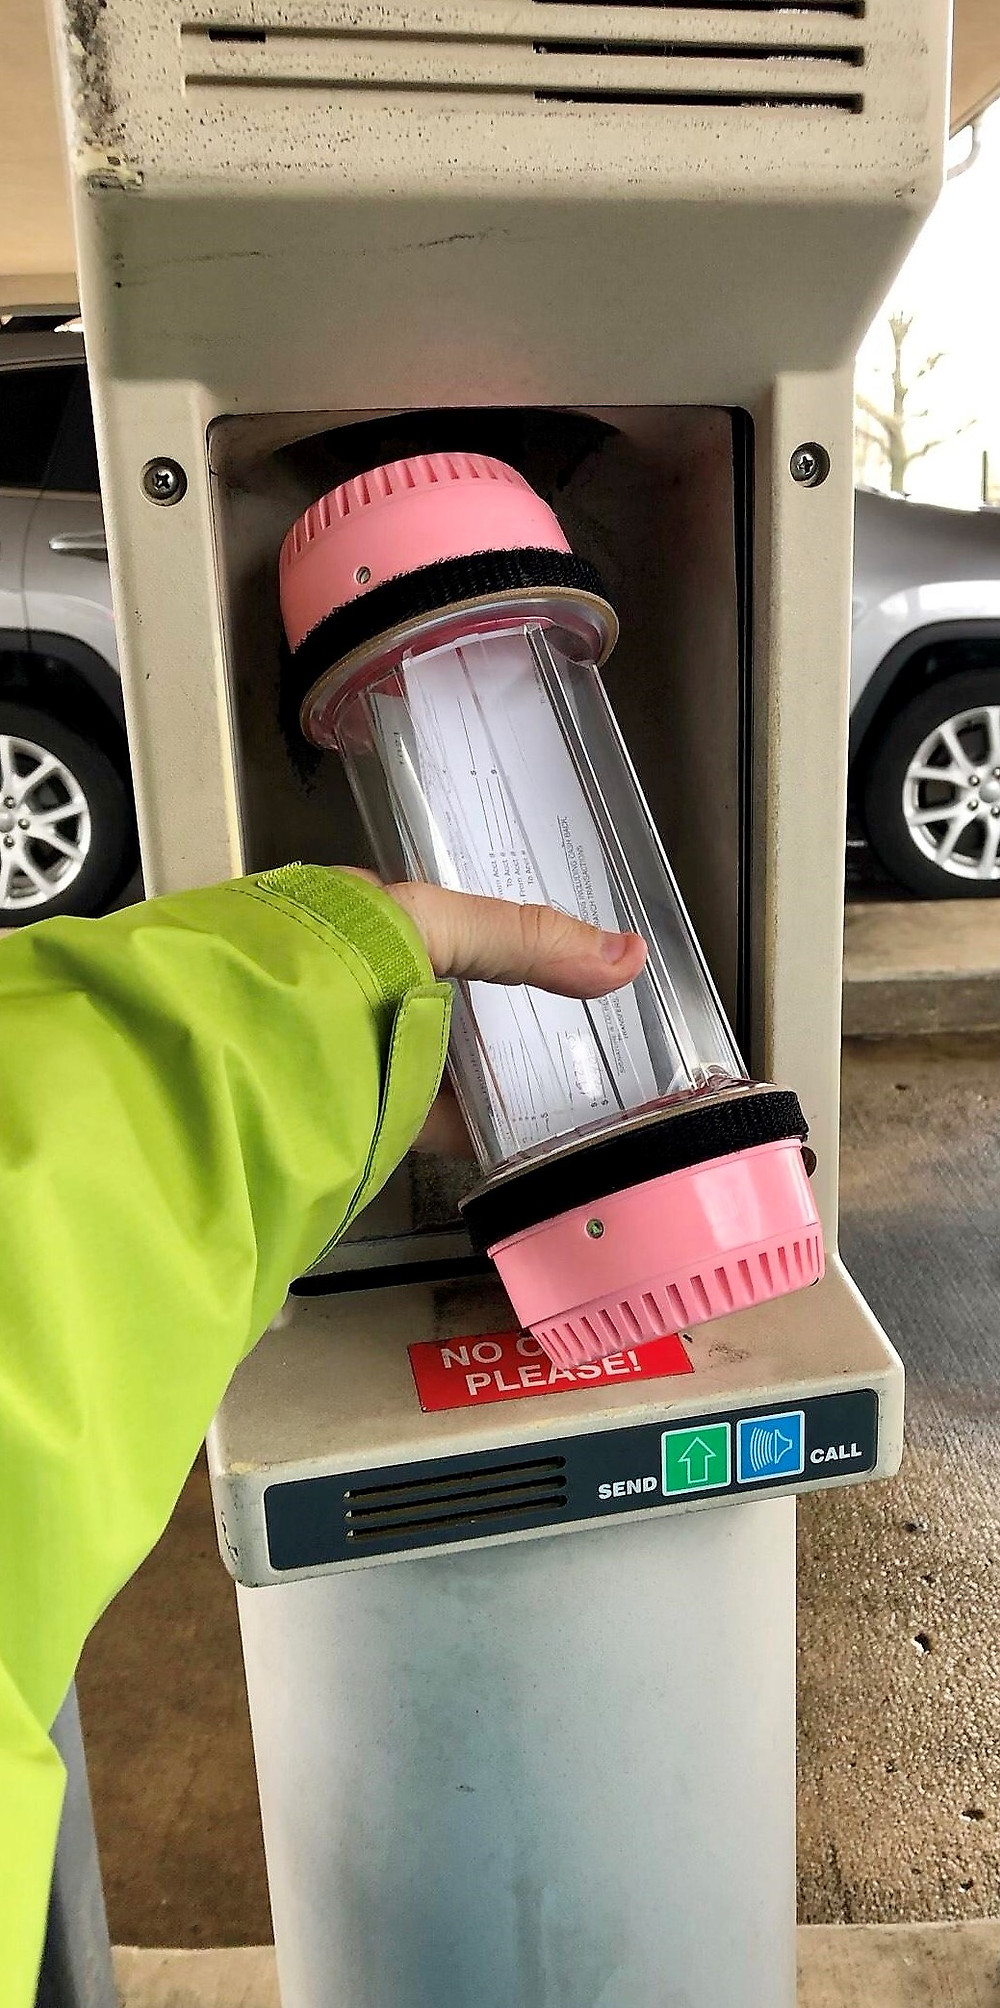 This is not me, it's just a random picture I found online as an example of the bank drive-thru.